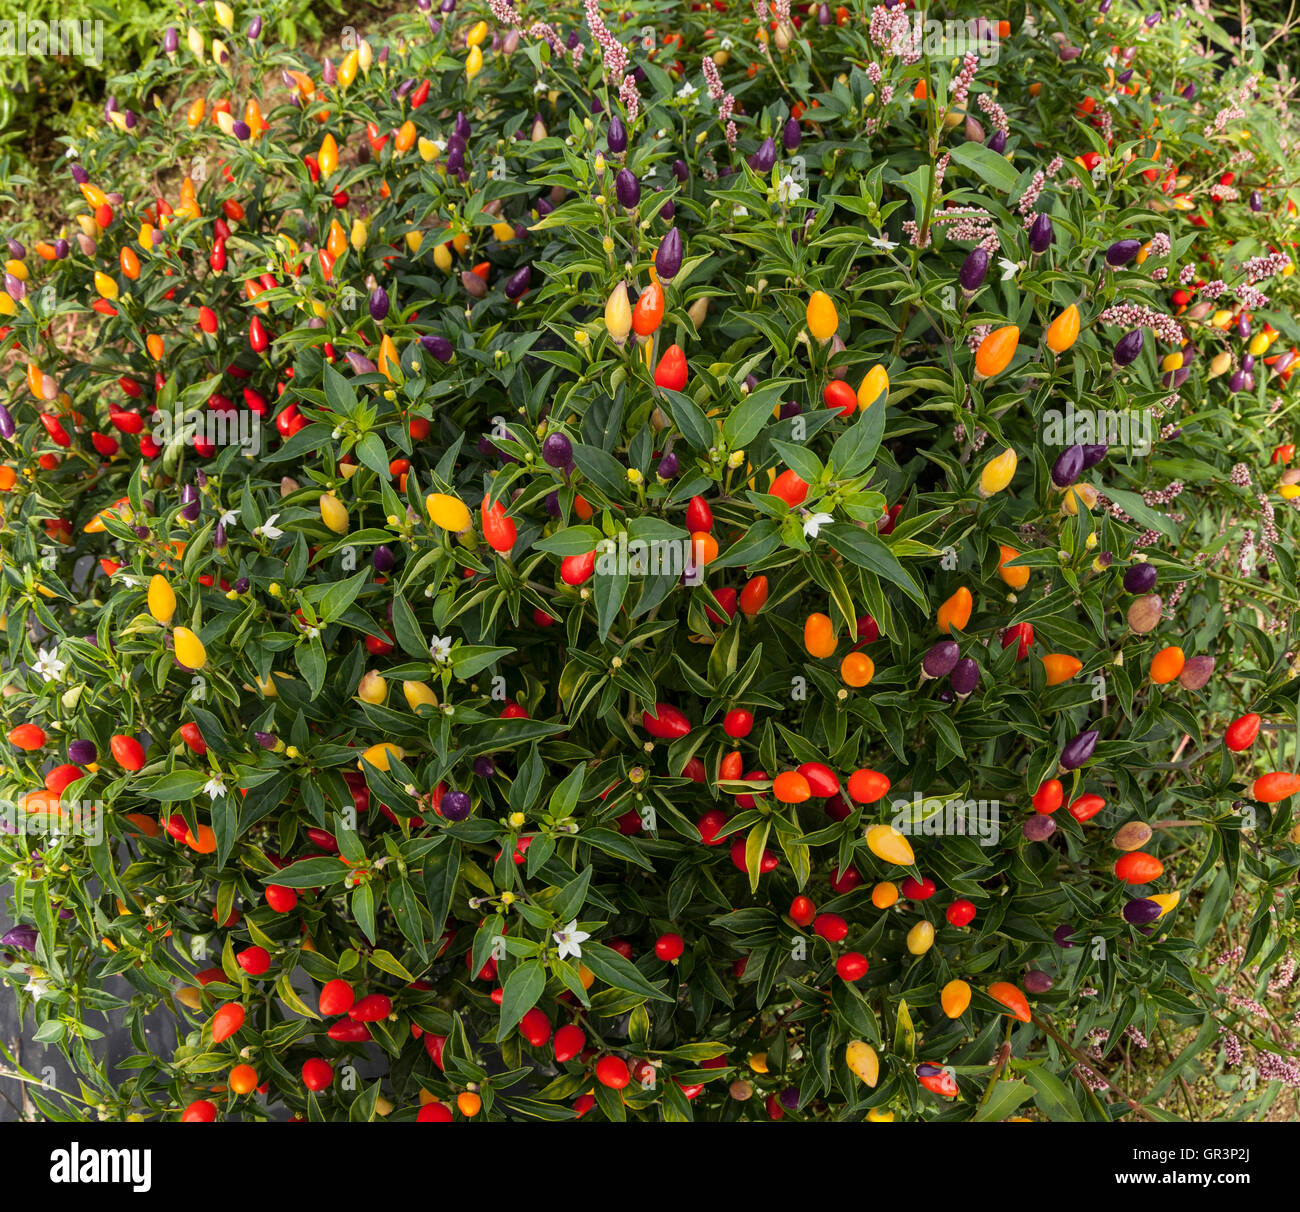 Ornamentals peppers - Stock Image